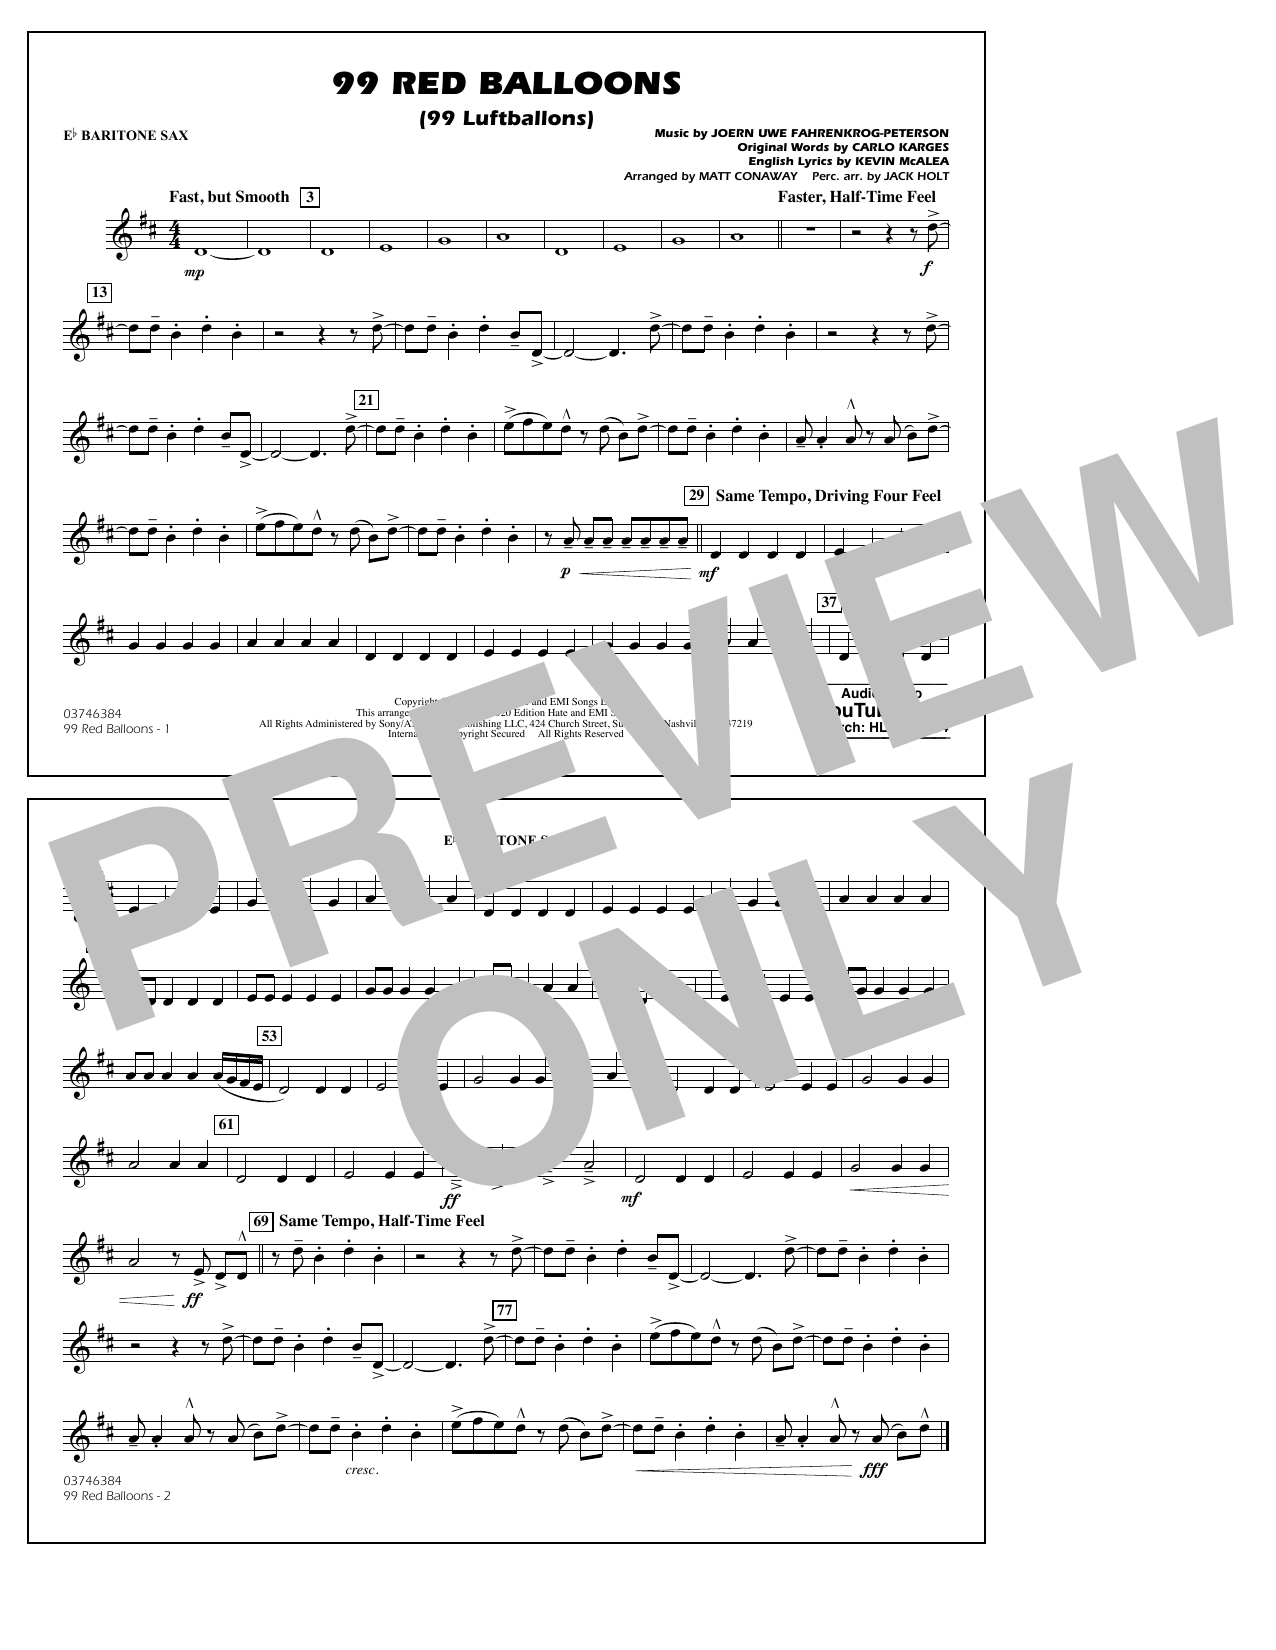 99 Red Balloons (arr. Holt and Conaway) - Eb Baritone Sax Sheet Music